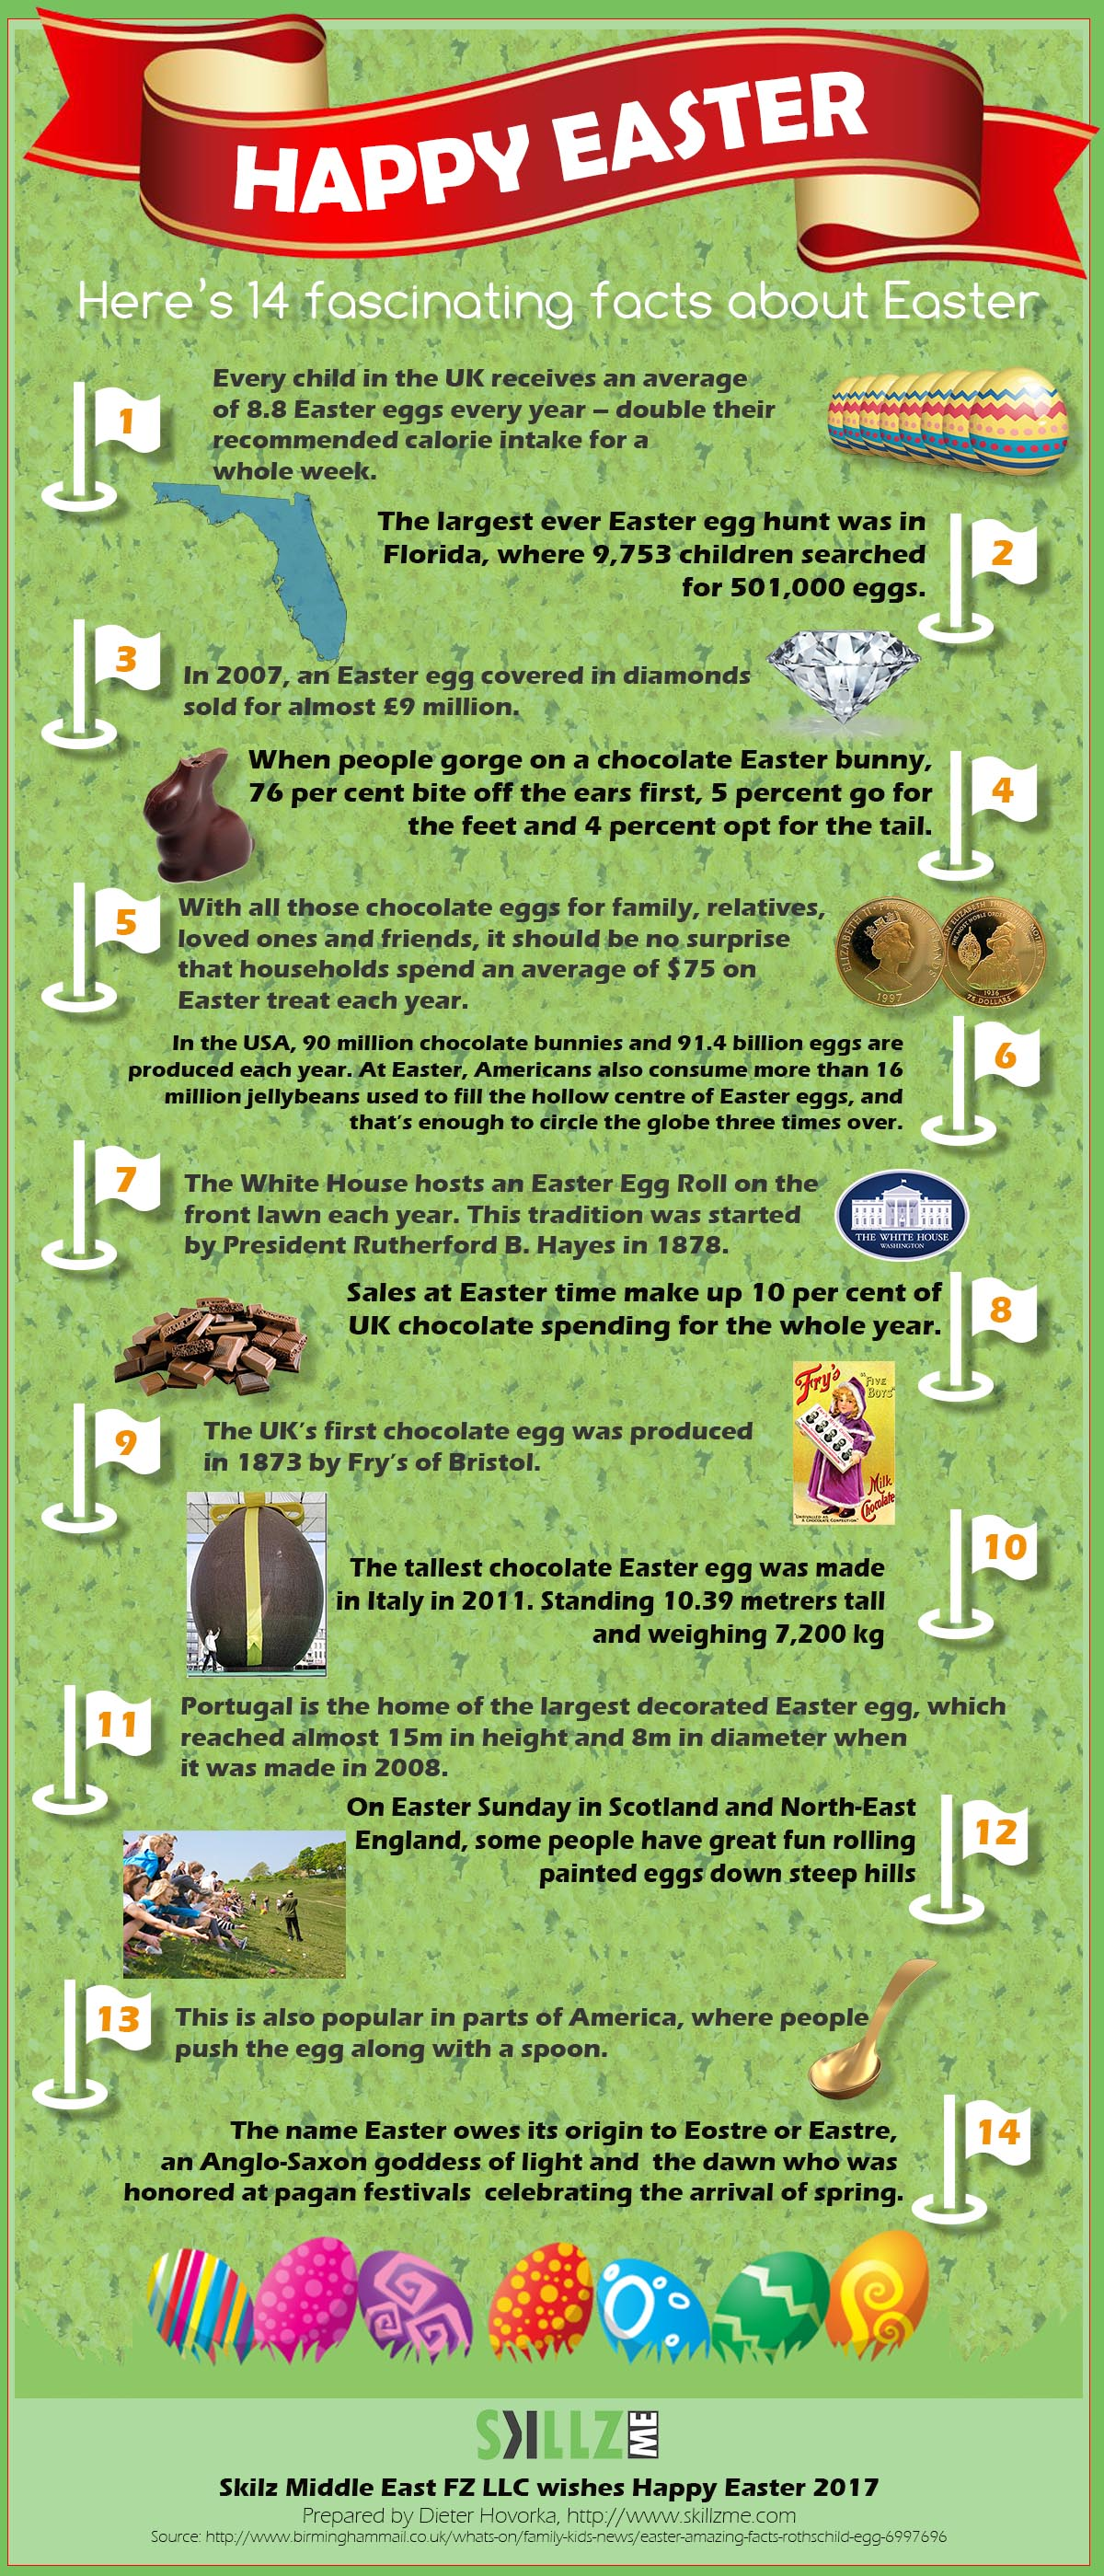 Happty Easter 2017 - 14 fascinating facts about easter